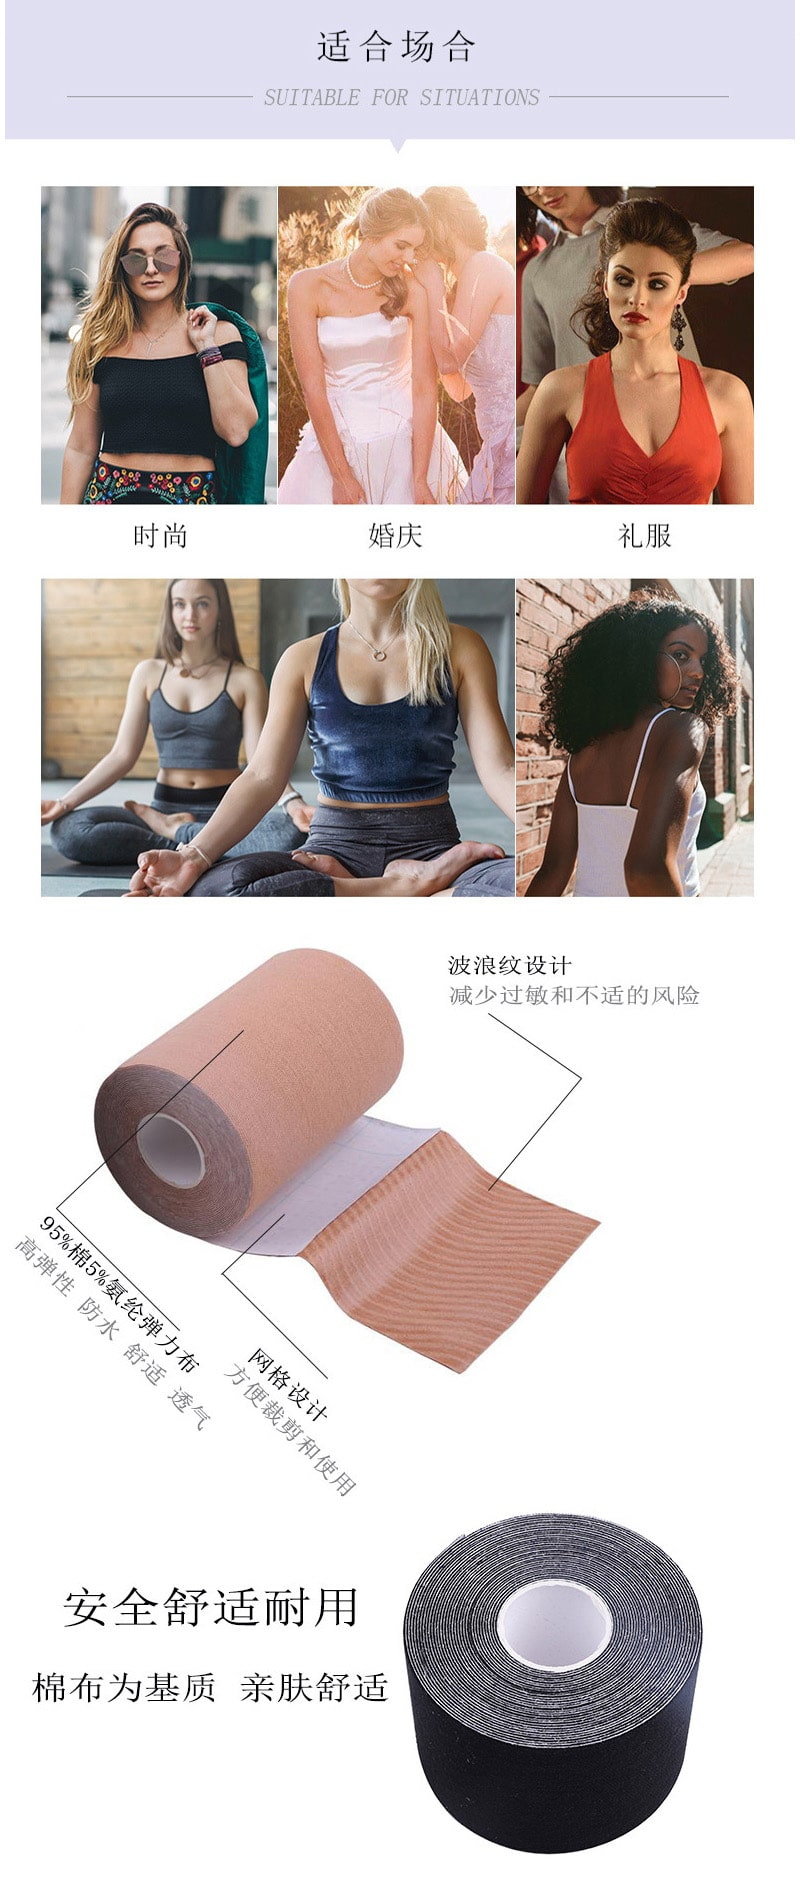 Beauty Enhancer Boob Tape - Situations